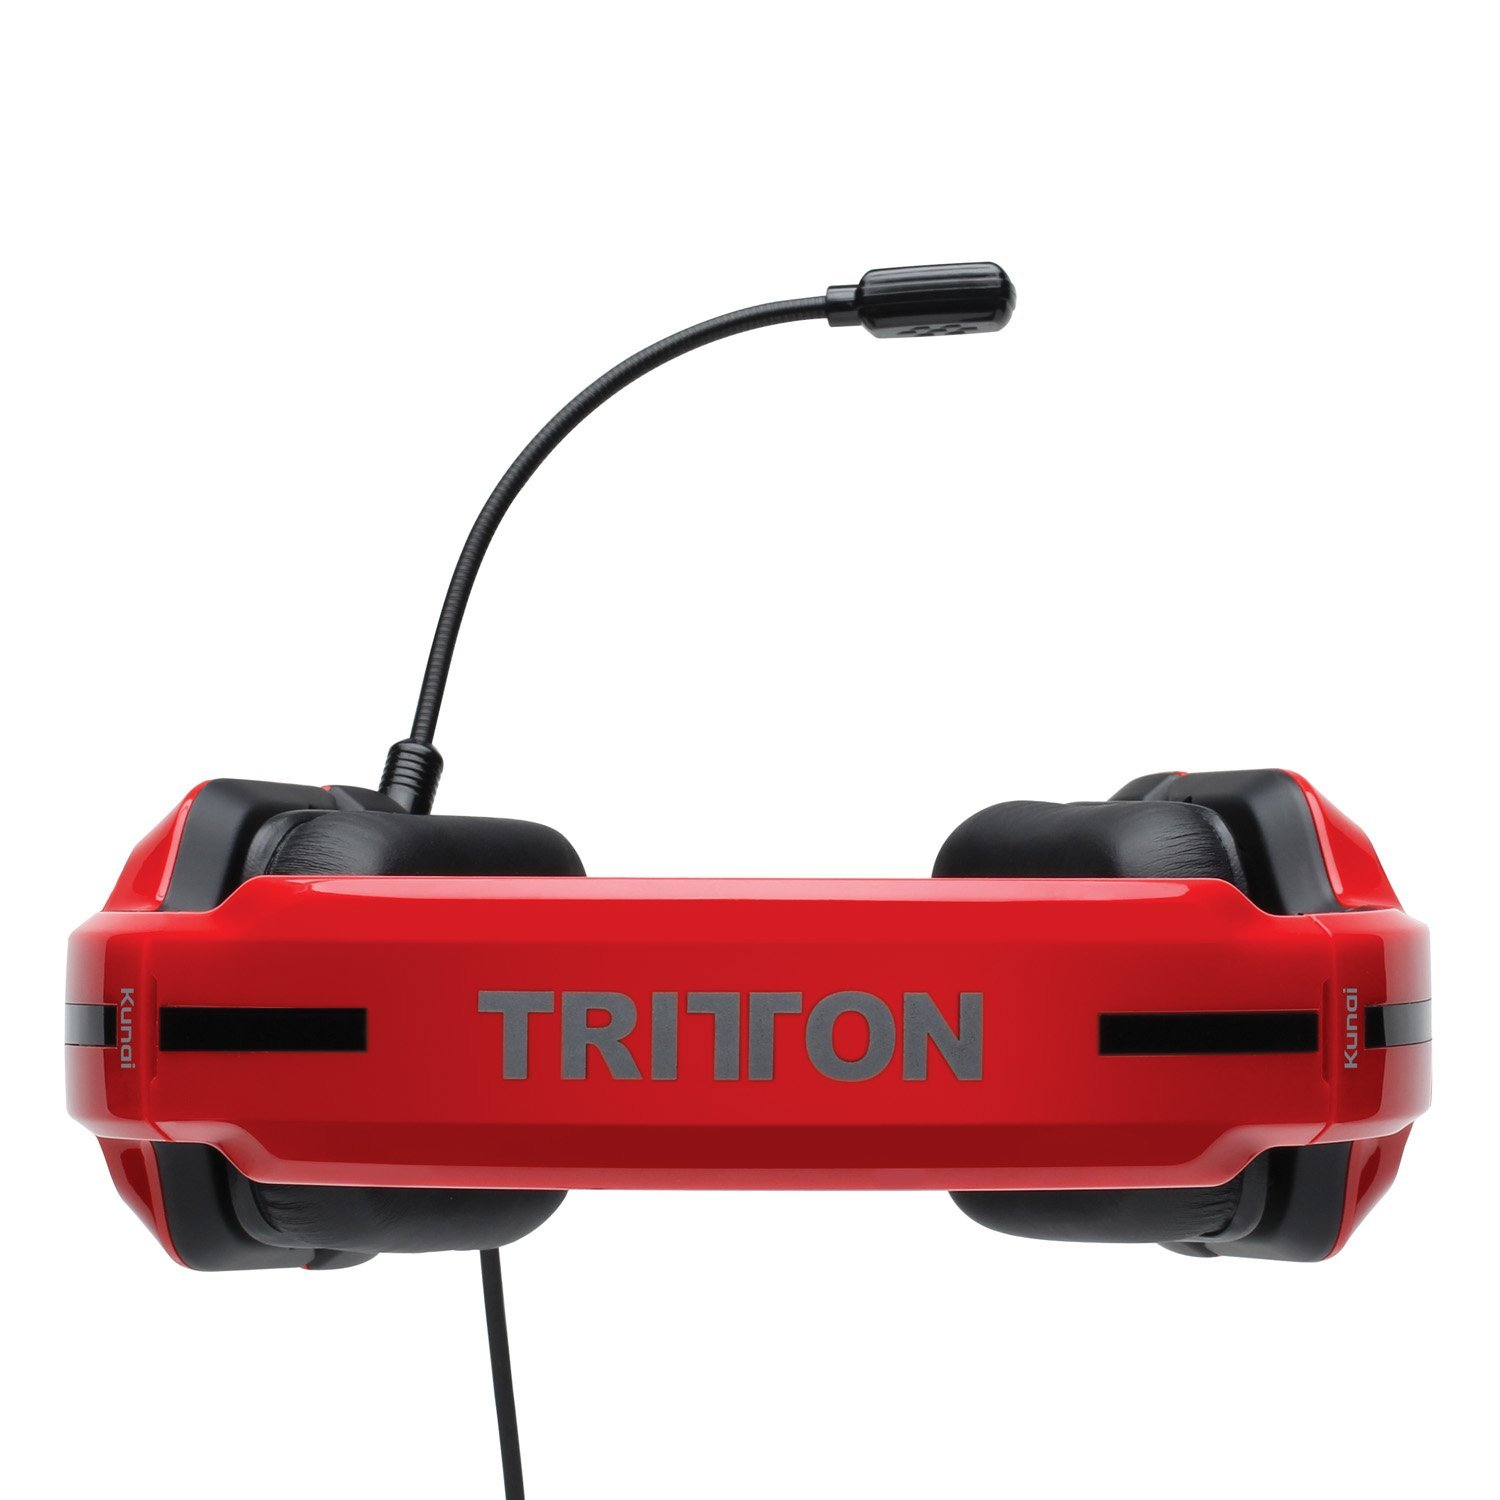 tritton kunai casque gaming st r o pour ps3 ps vita compatible ps4 ps3 ps vita achat jeux. Black Bedroom Furniture Sets. Home Design Ideas